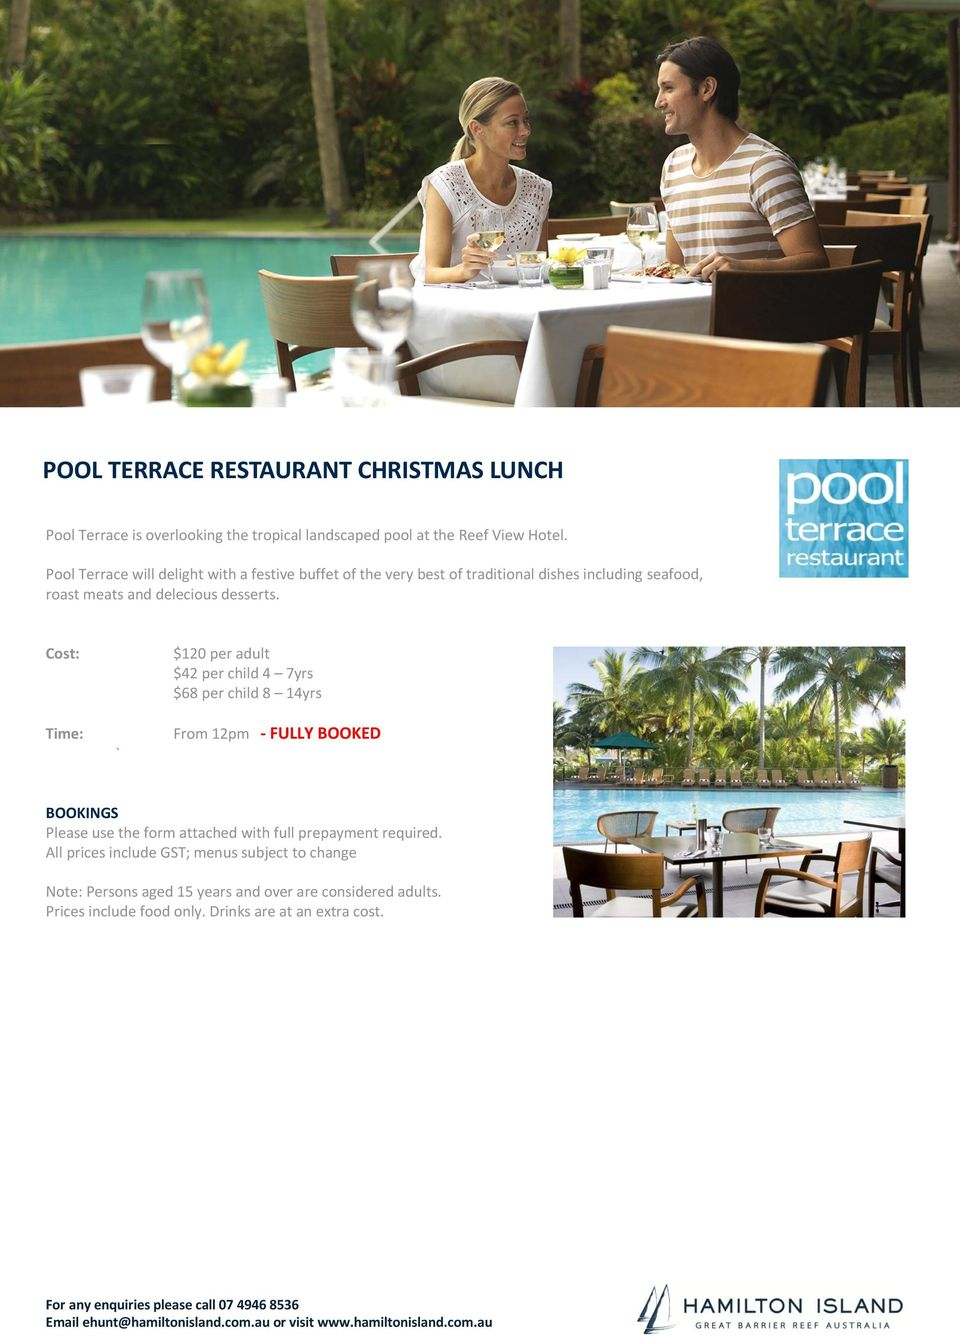 Pool Terrace will delight with a festive buffet of the very best of traditional dishes including seafood, roast